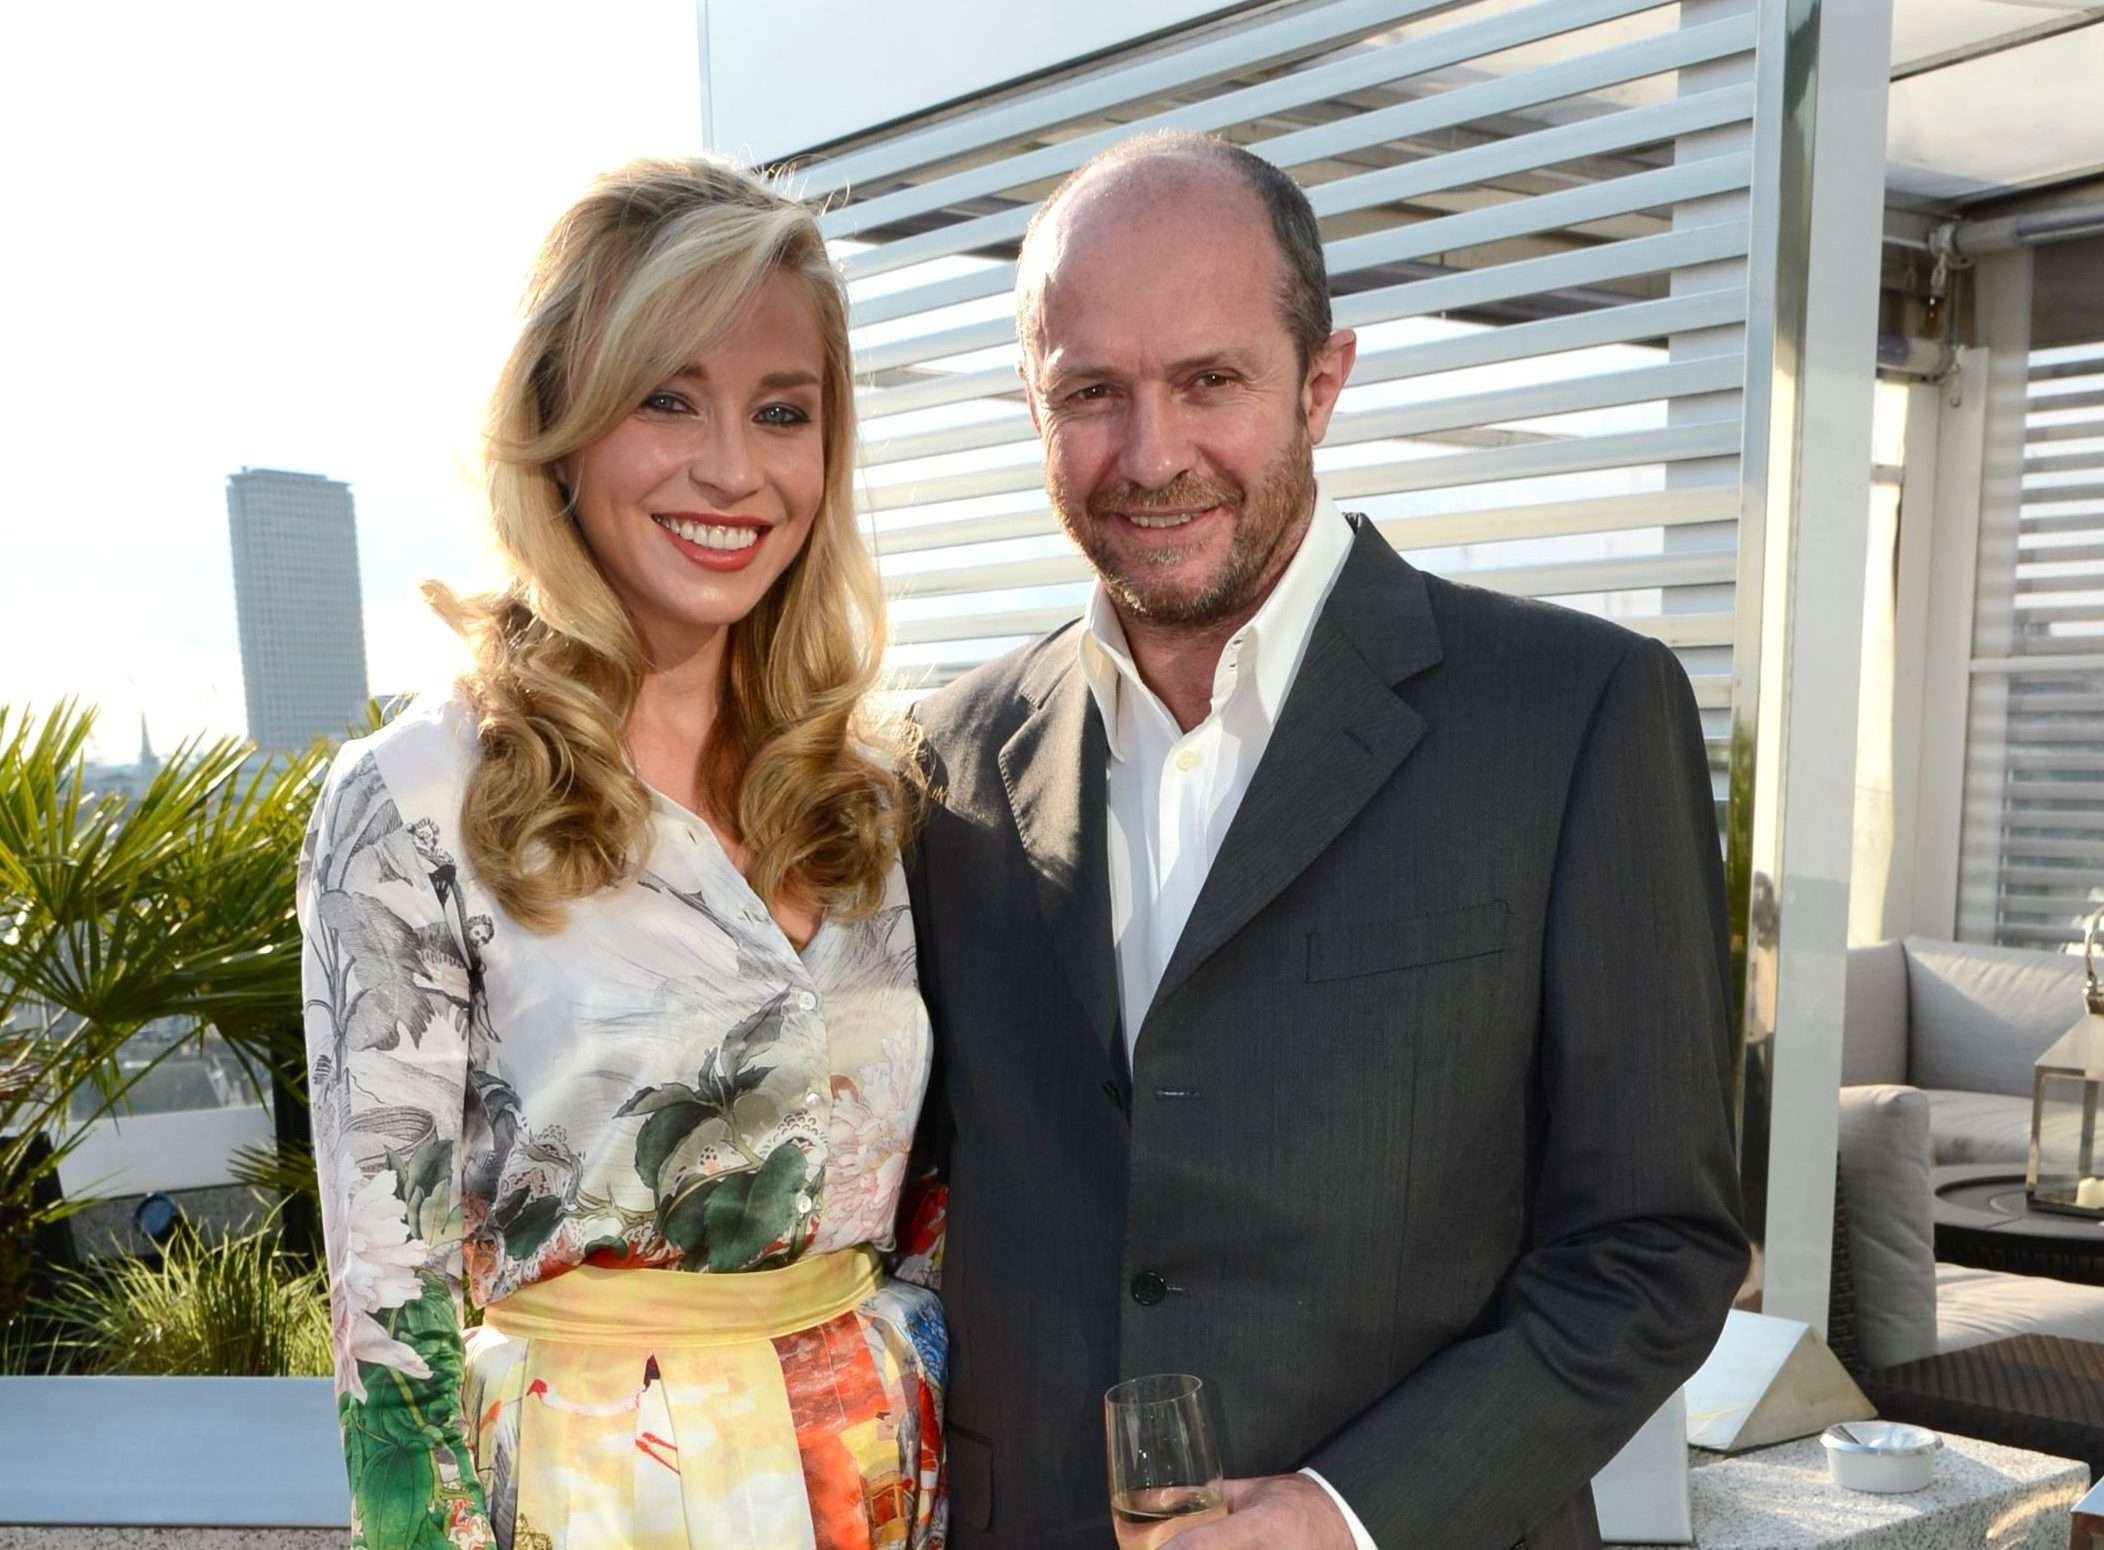 Noelle Reno and Scot Young (Richard Young/REX/Shutterstock)